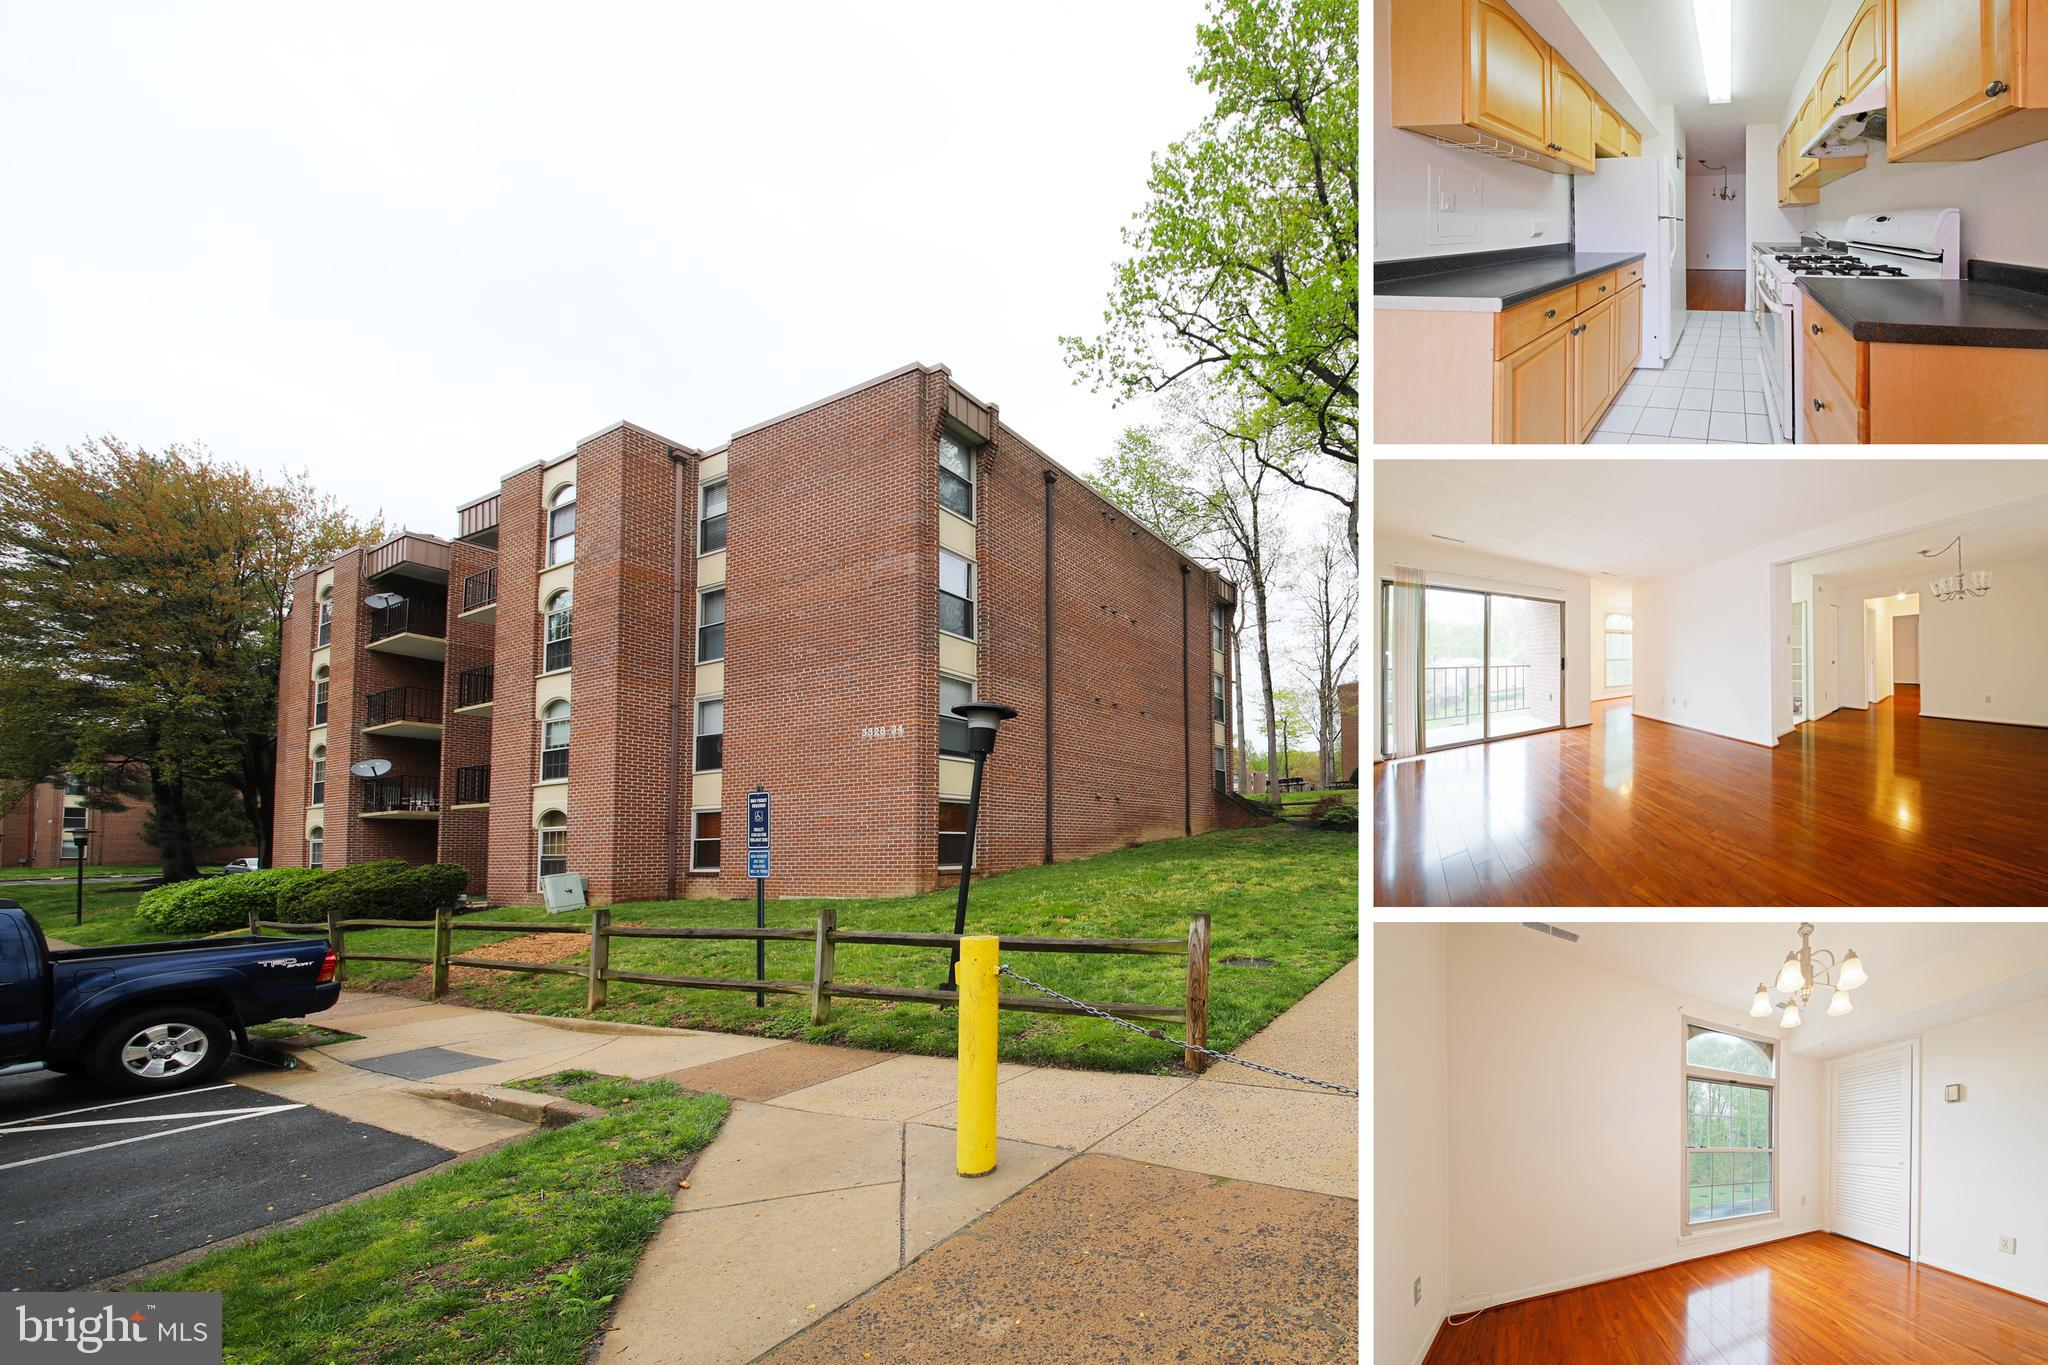 Wonderful 2br/1.5 ba condo at Woodburn Village. Just meters from Fairfax Hospital - mins from I-495, I-66 and Tysons. Conv. to bus and metro. Garden community with great common grounds, tennis courts, picnic areas + outdoor pool. Upper lvl - lots of light. Condo fee inc ALL UTILS. Xtra strge. Owner licensed, sale may be subject to 1031 Exchange.